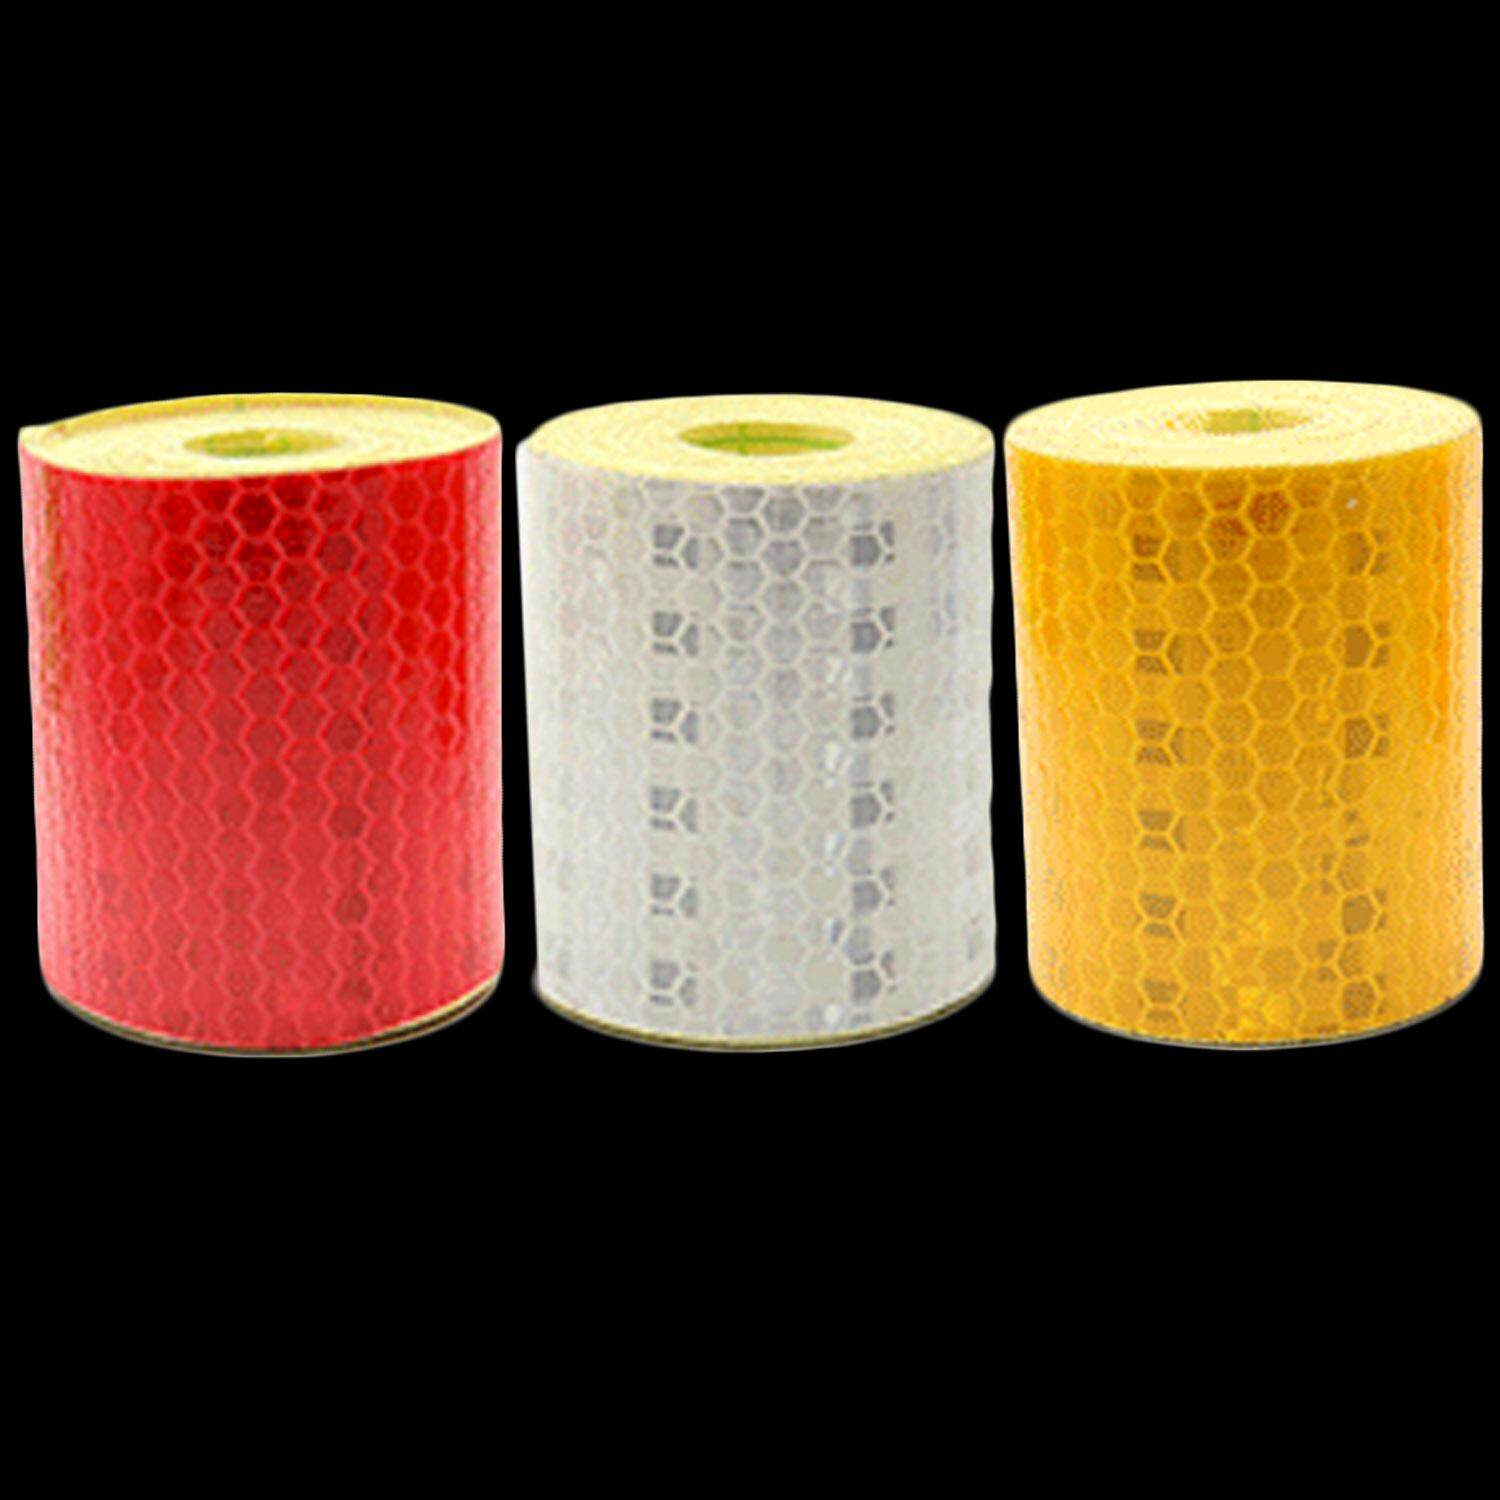 3 Roll 5 X 300cm Reflective Reflector Safety Warning Conspicuity Tape Strip Sticker For Truck Motorcycle Car Tricycles Red + Silver + Yellow - Intl By Stoneky.